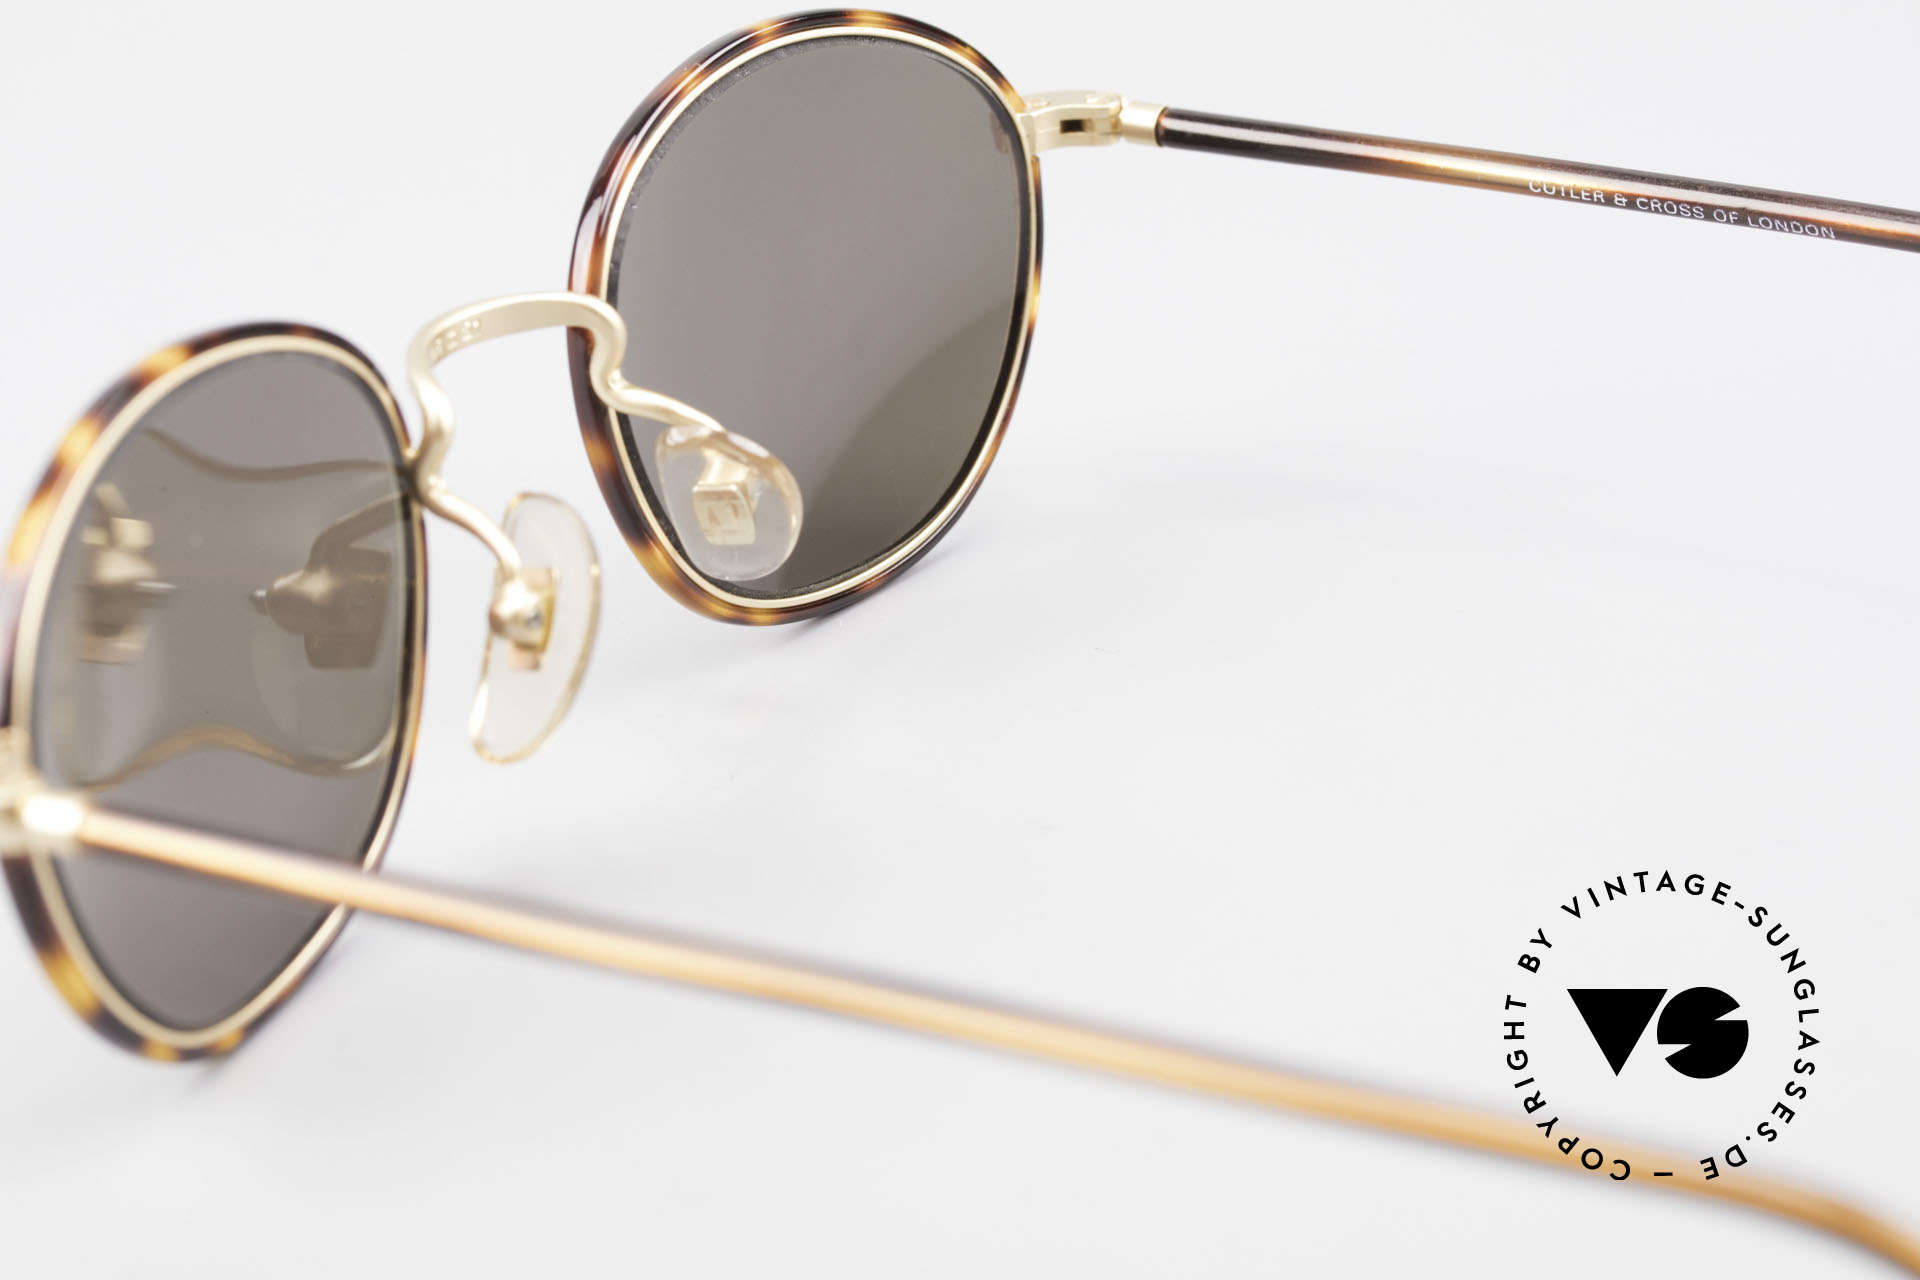 Cutler And Gross 0394 Classic Vintage Sunglasses 90s, NO RETRO fashion, but a unique 20 years old ORIGINAL, Made for Men and Women